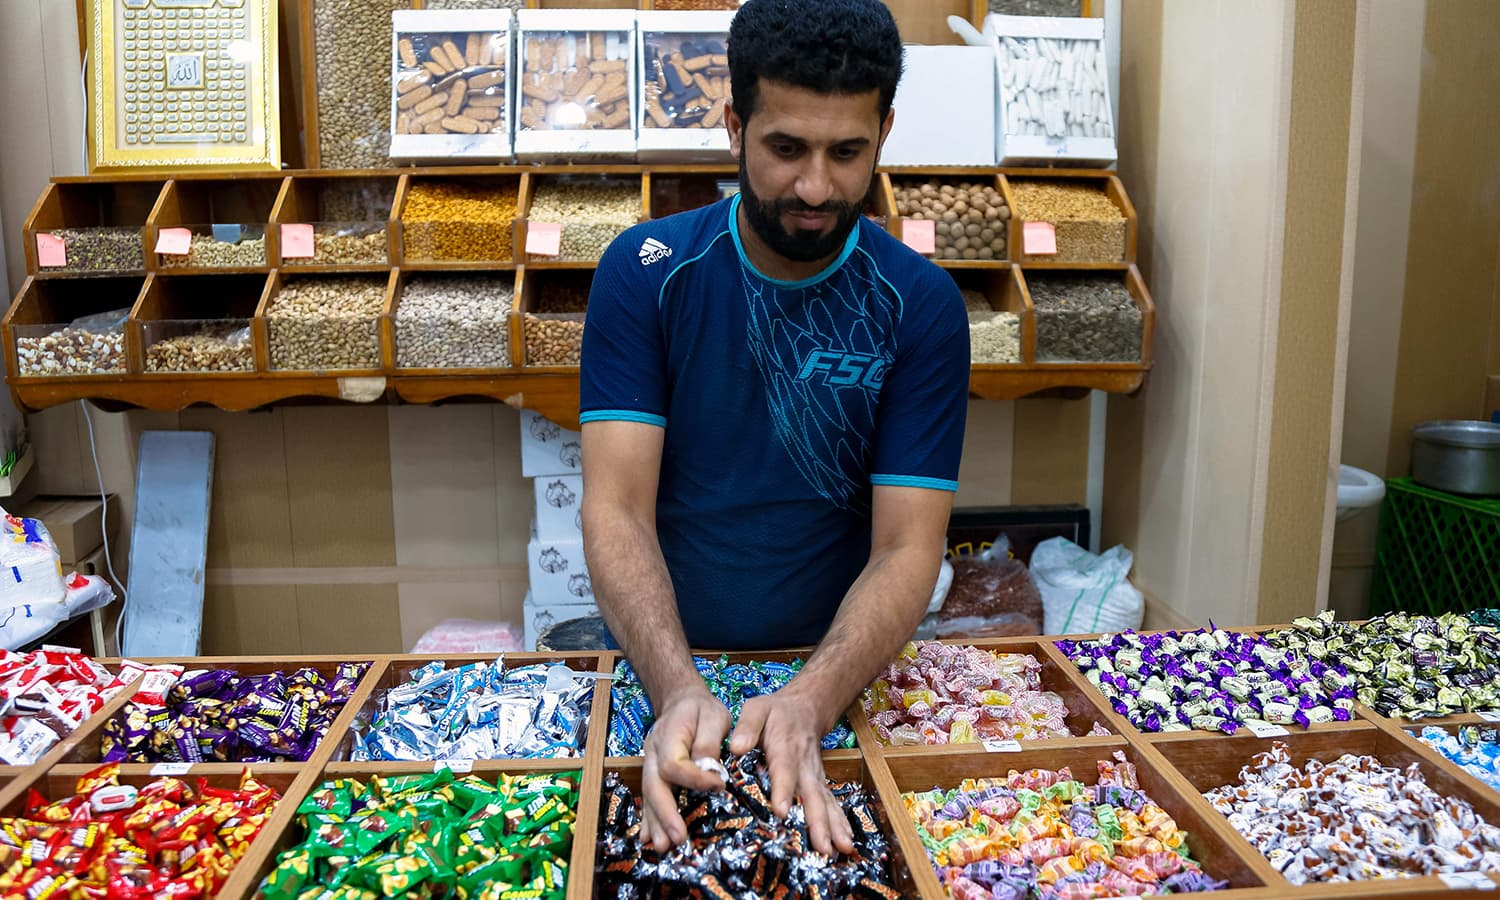 An Iraqi vendor restocks his chocolate shop in the central holy city of Najaf. — AFP